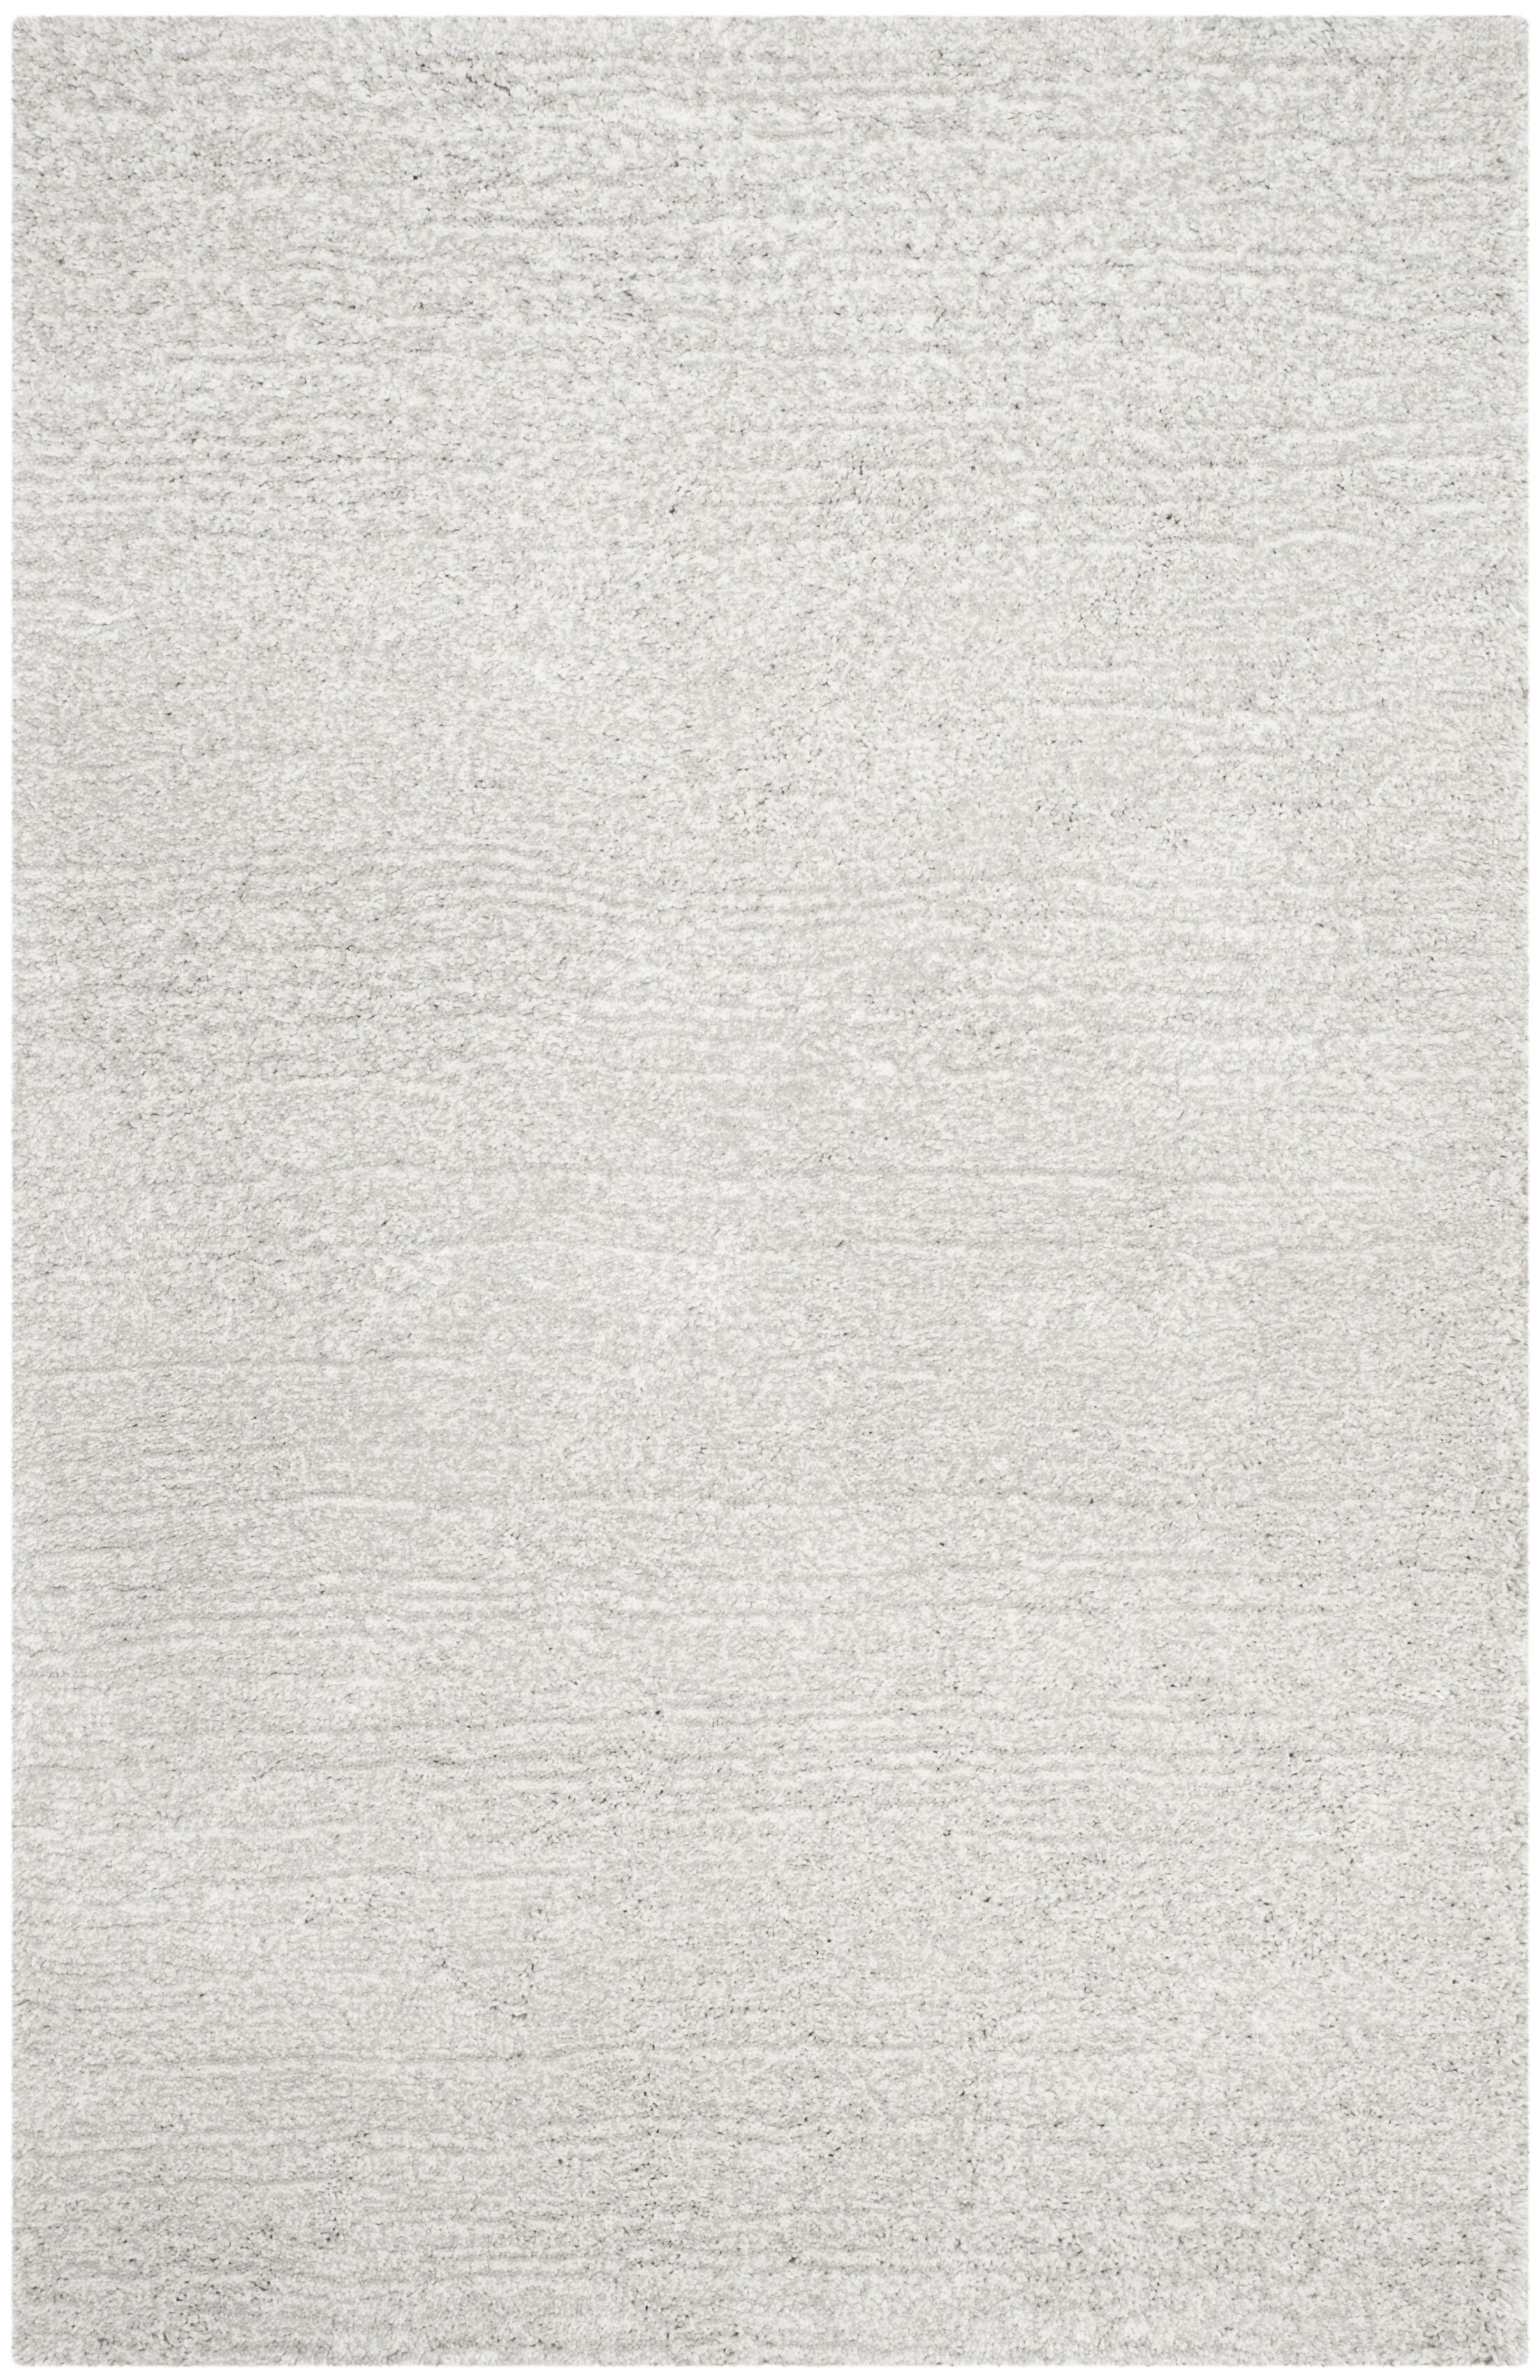 Sadler Hand-Tufted Silver/ Ivory Area Rug Rug Size: Rectangle 4' x 6'